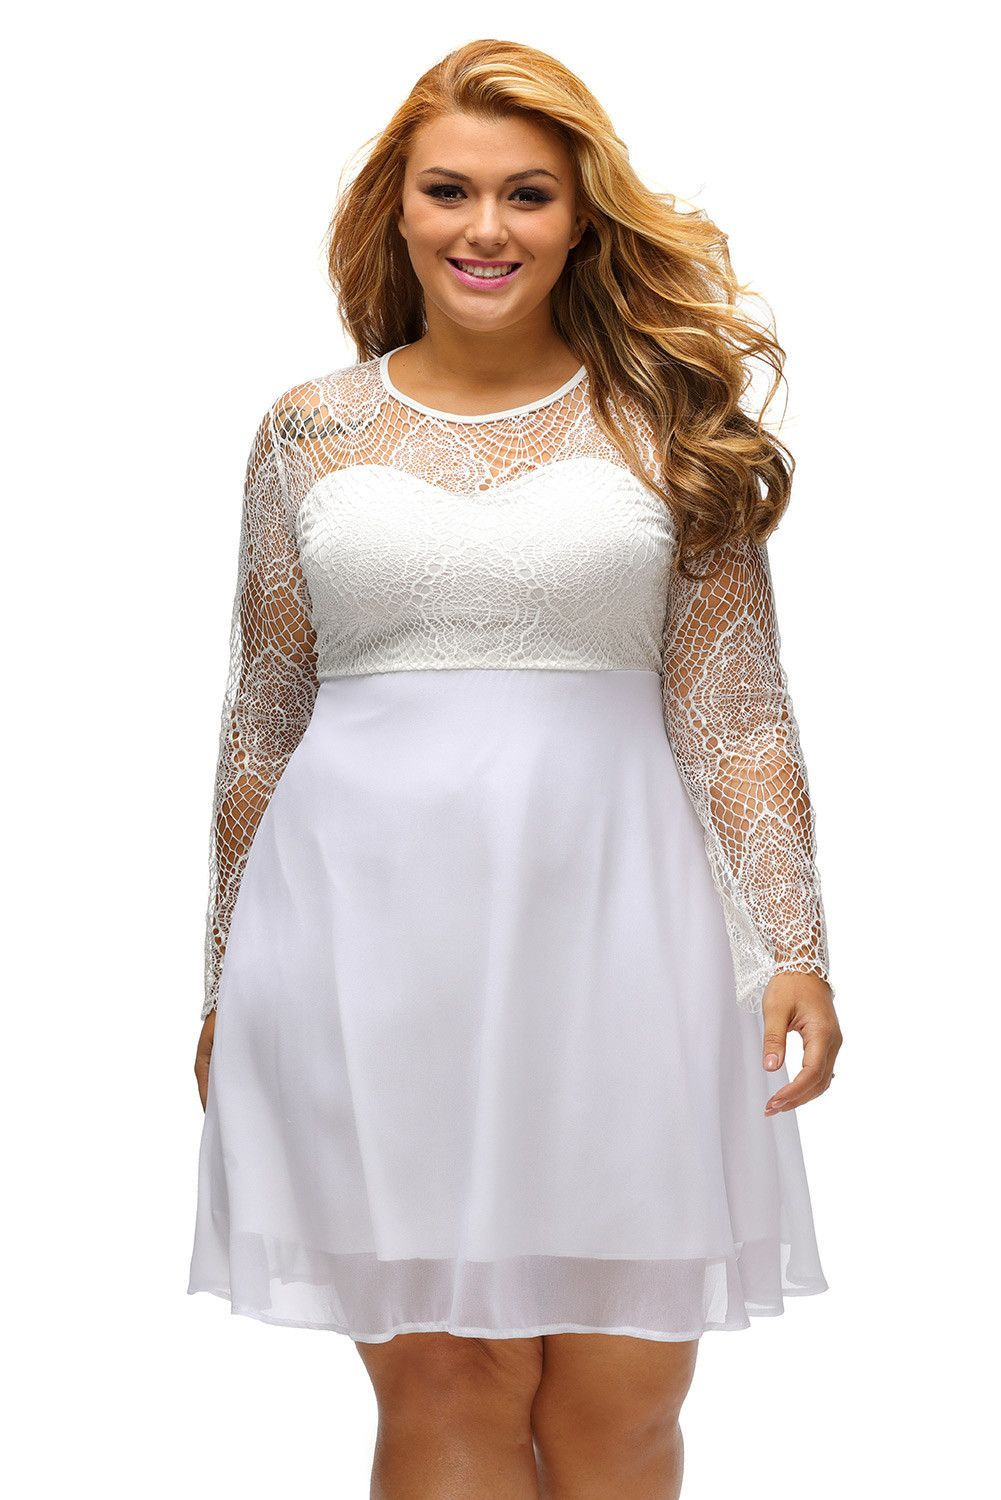 Prix  €16.86 Robes Blanches de Soiree Grandes Tailles Dentelle Manches  Longues Pas Cher www.modebuy.com  Modebuy  Modebuy  Rouge  me  sexy  robes 336c5e0456d